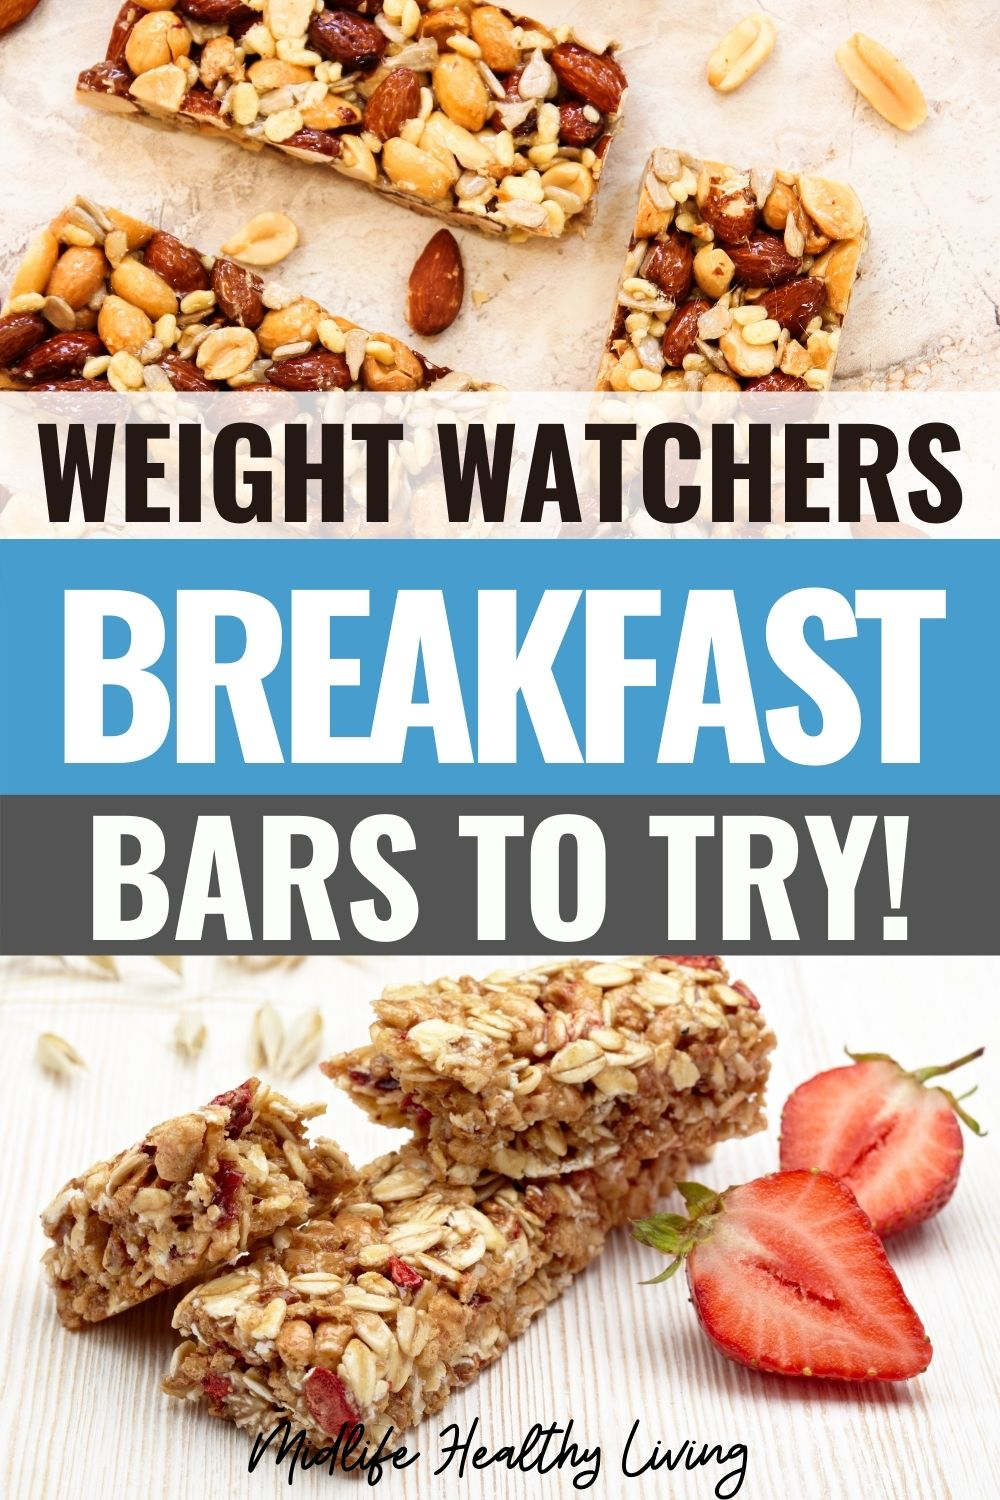 Pin showing the weight watchers breakfast bars ready to eat with title in the middle.